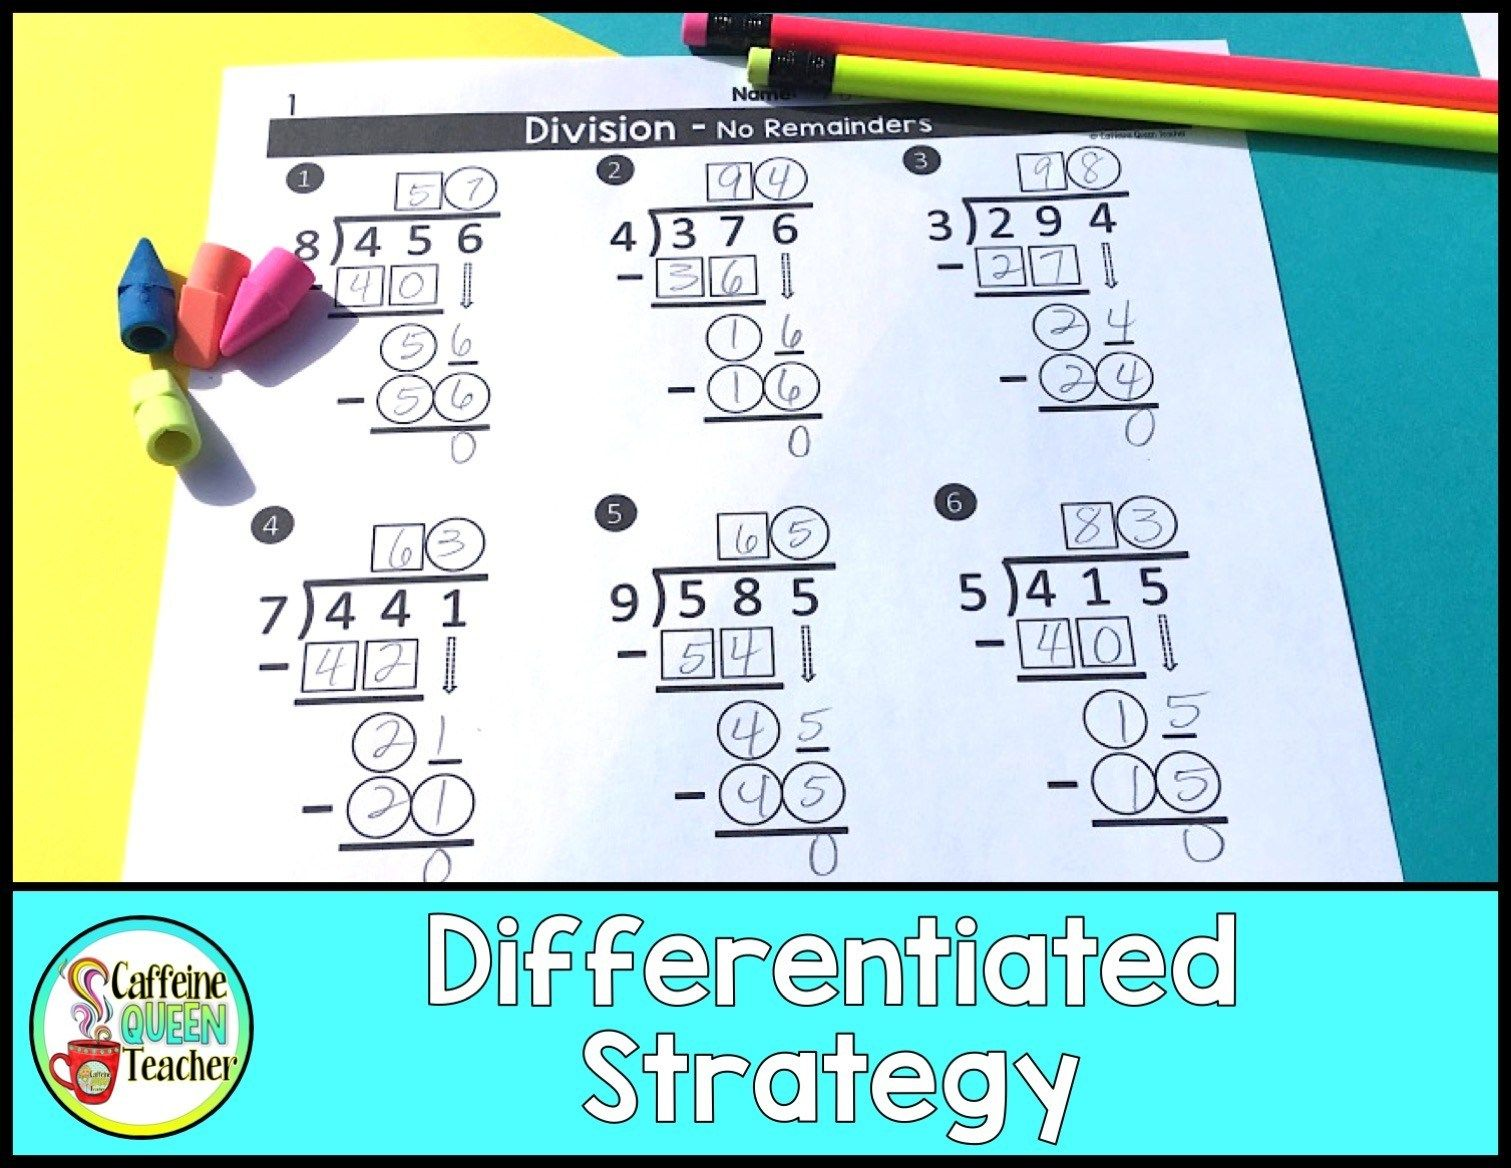 Differentiated Long Division Worksheets For Free Caffeine Queen Teacher Long Division Worksheets Long Division Special Education Students Differentiated division worksheets year